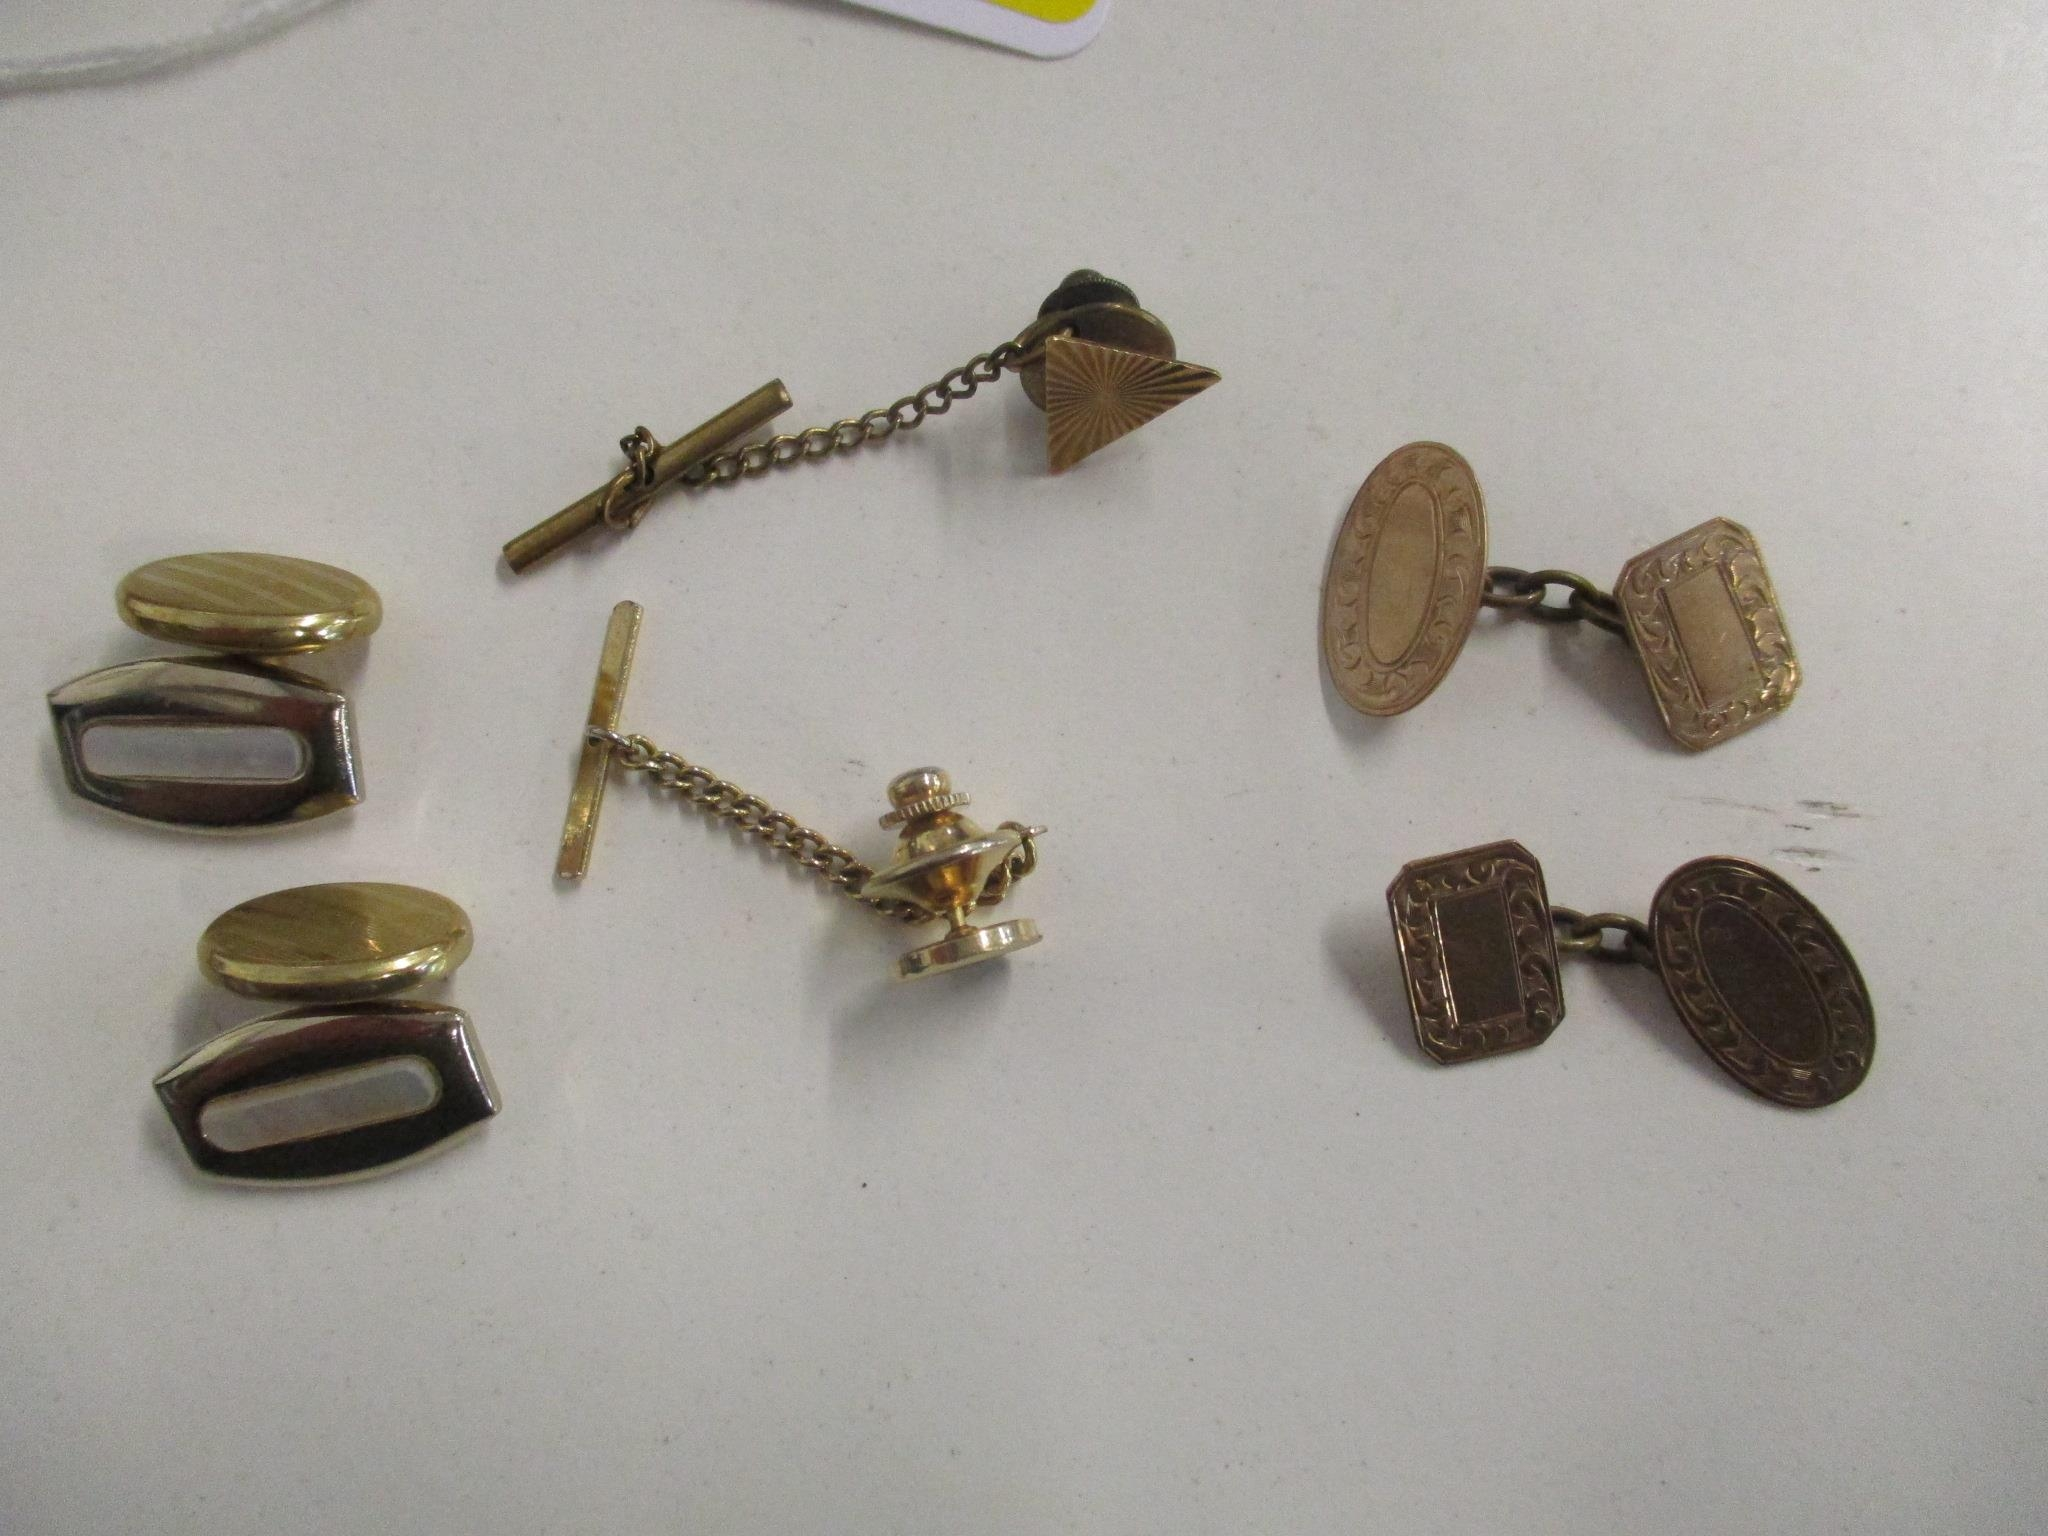 A pair of 9ct gold Chester hallmarked cuff links, 5.4g, along with other cuff links